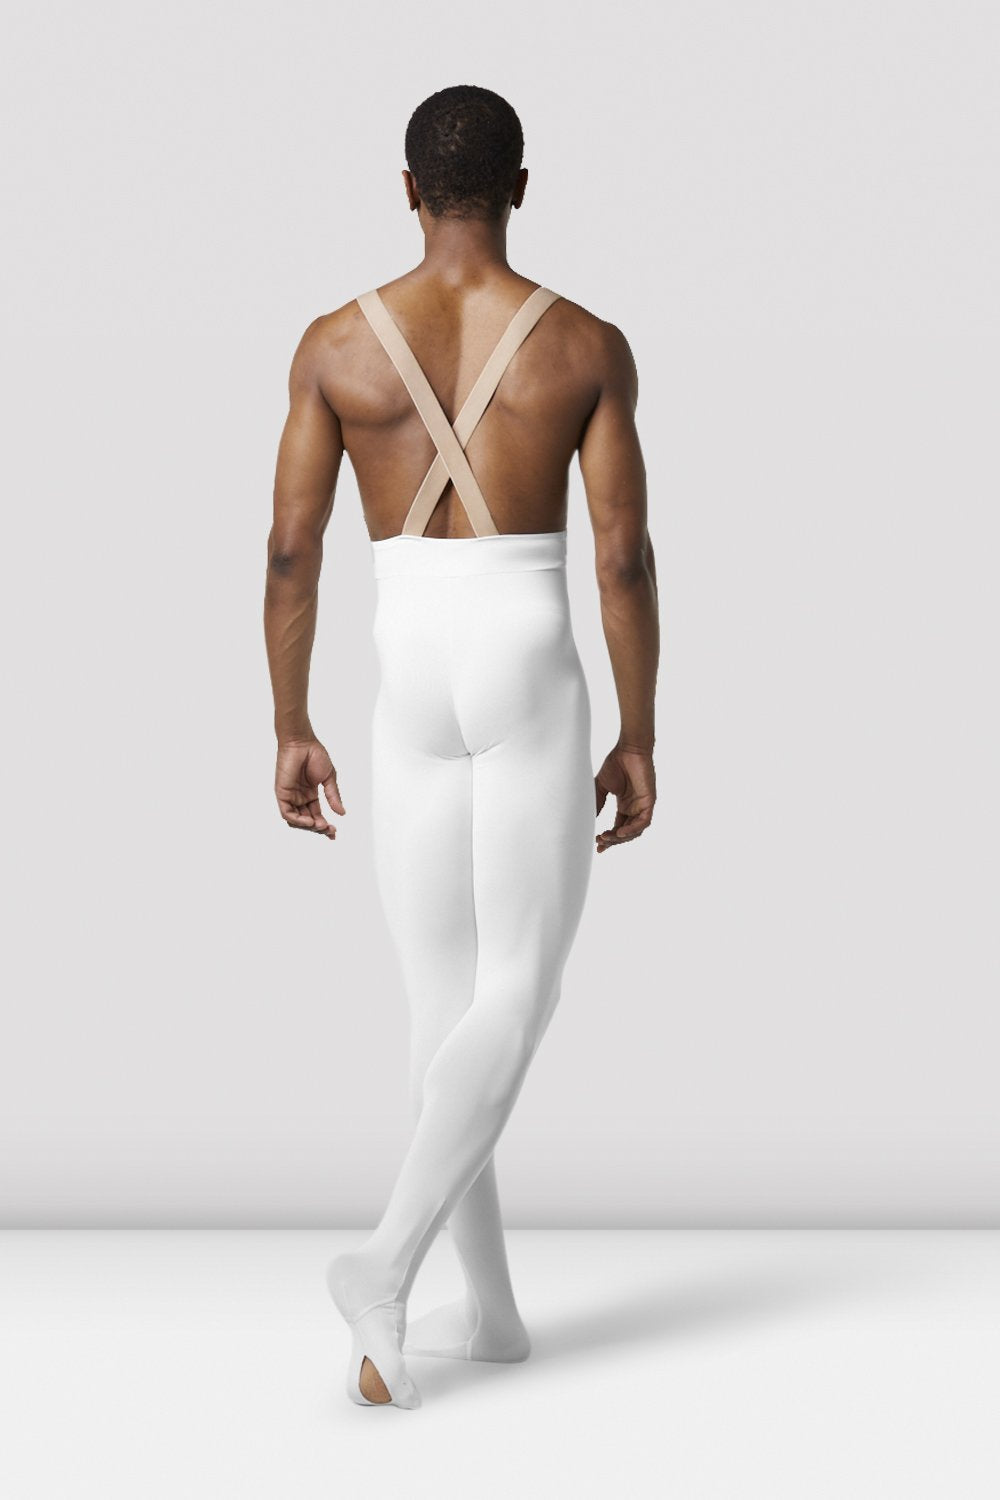 White Bloch Mens Performance Footed Dance Tight on male model in classical position with arms by side facing back